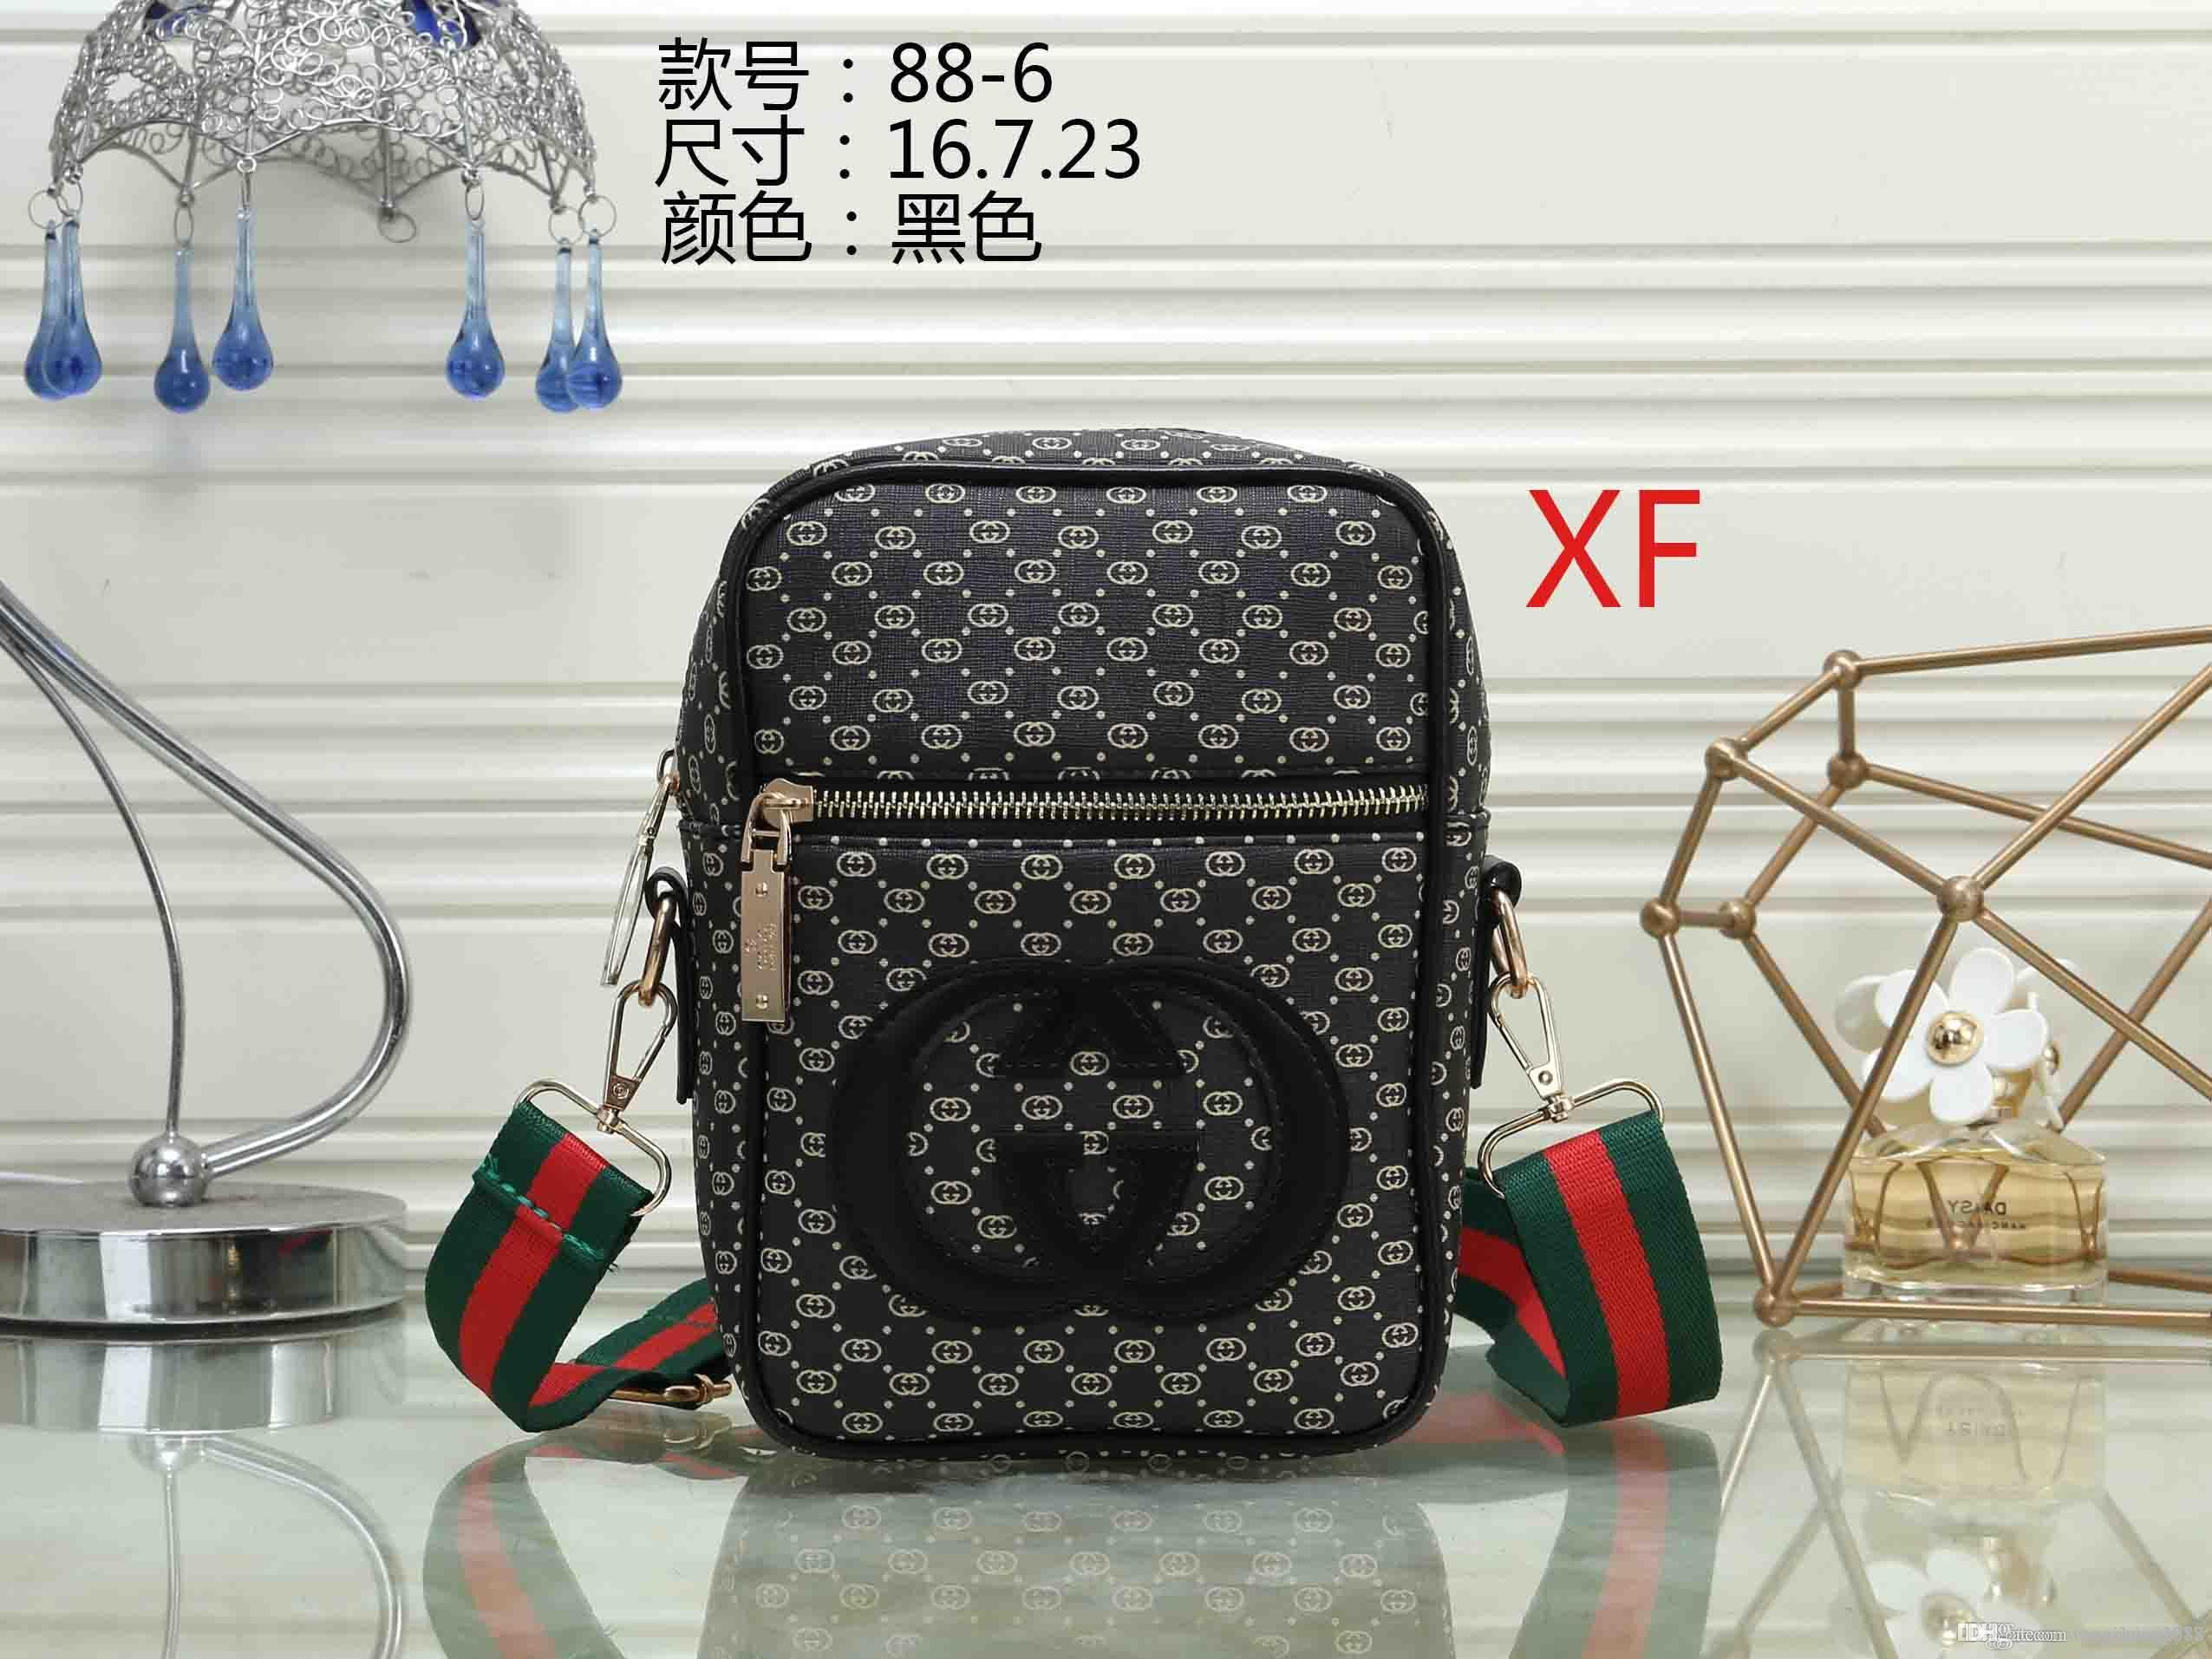 2018 new fashion men women travel bag duffle bag, brand designer luggage handbags large capacity sport bag _AAAAA36